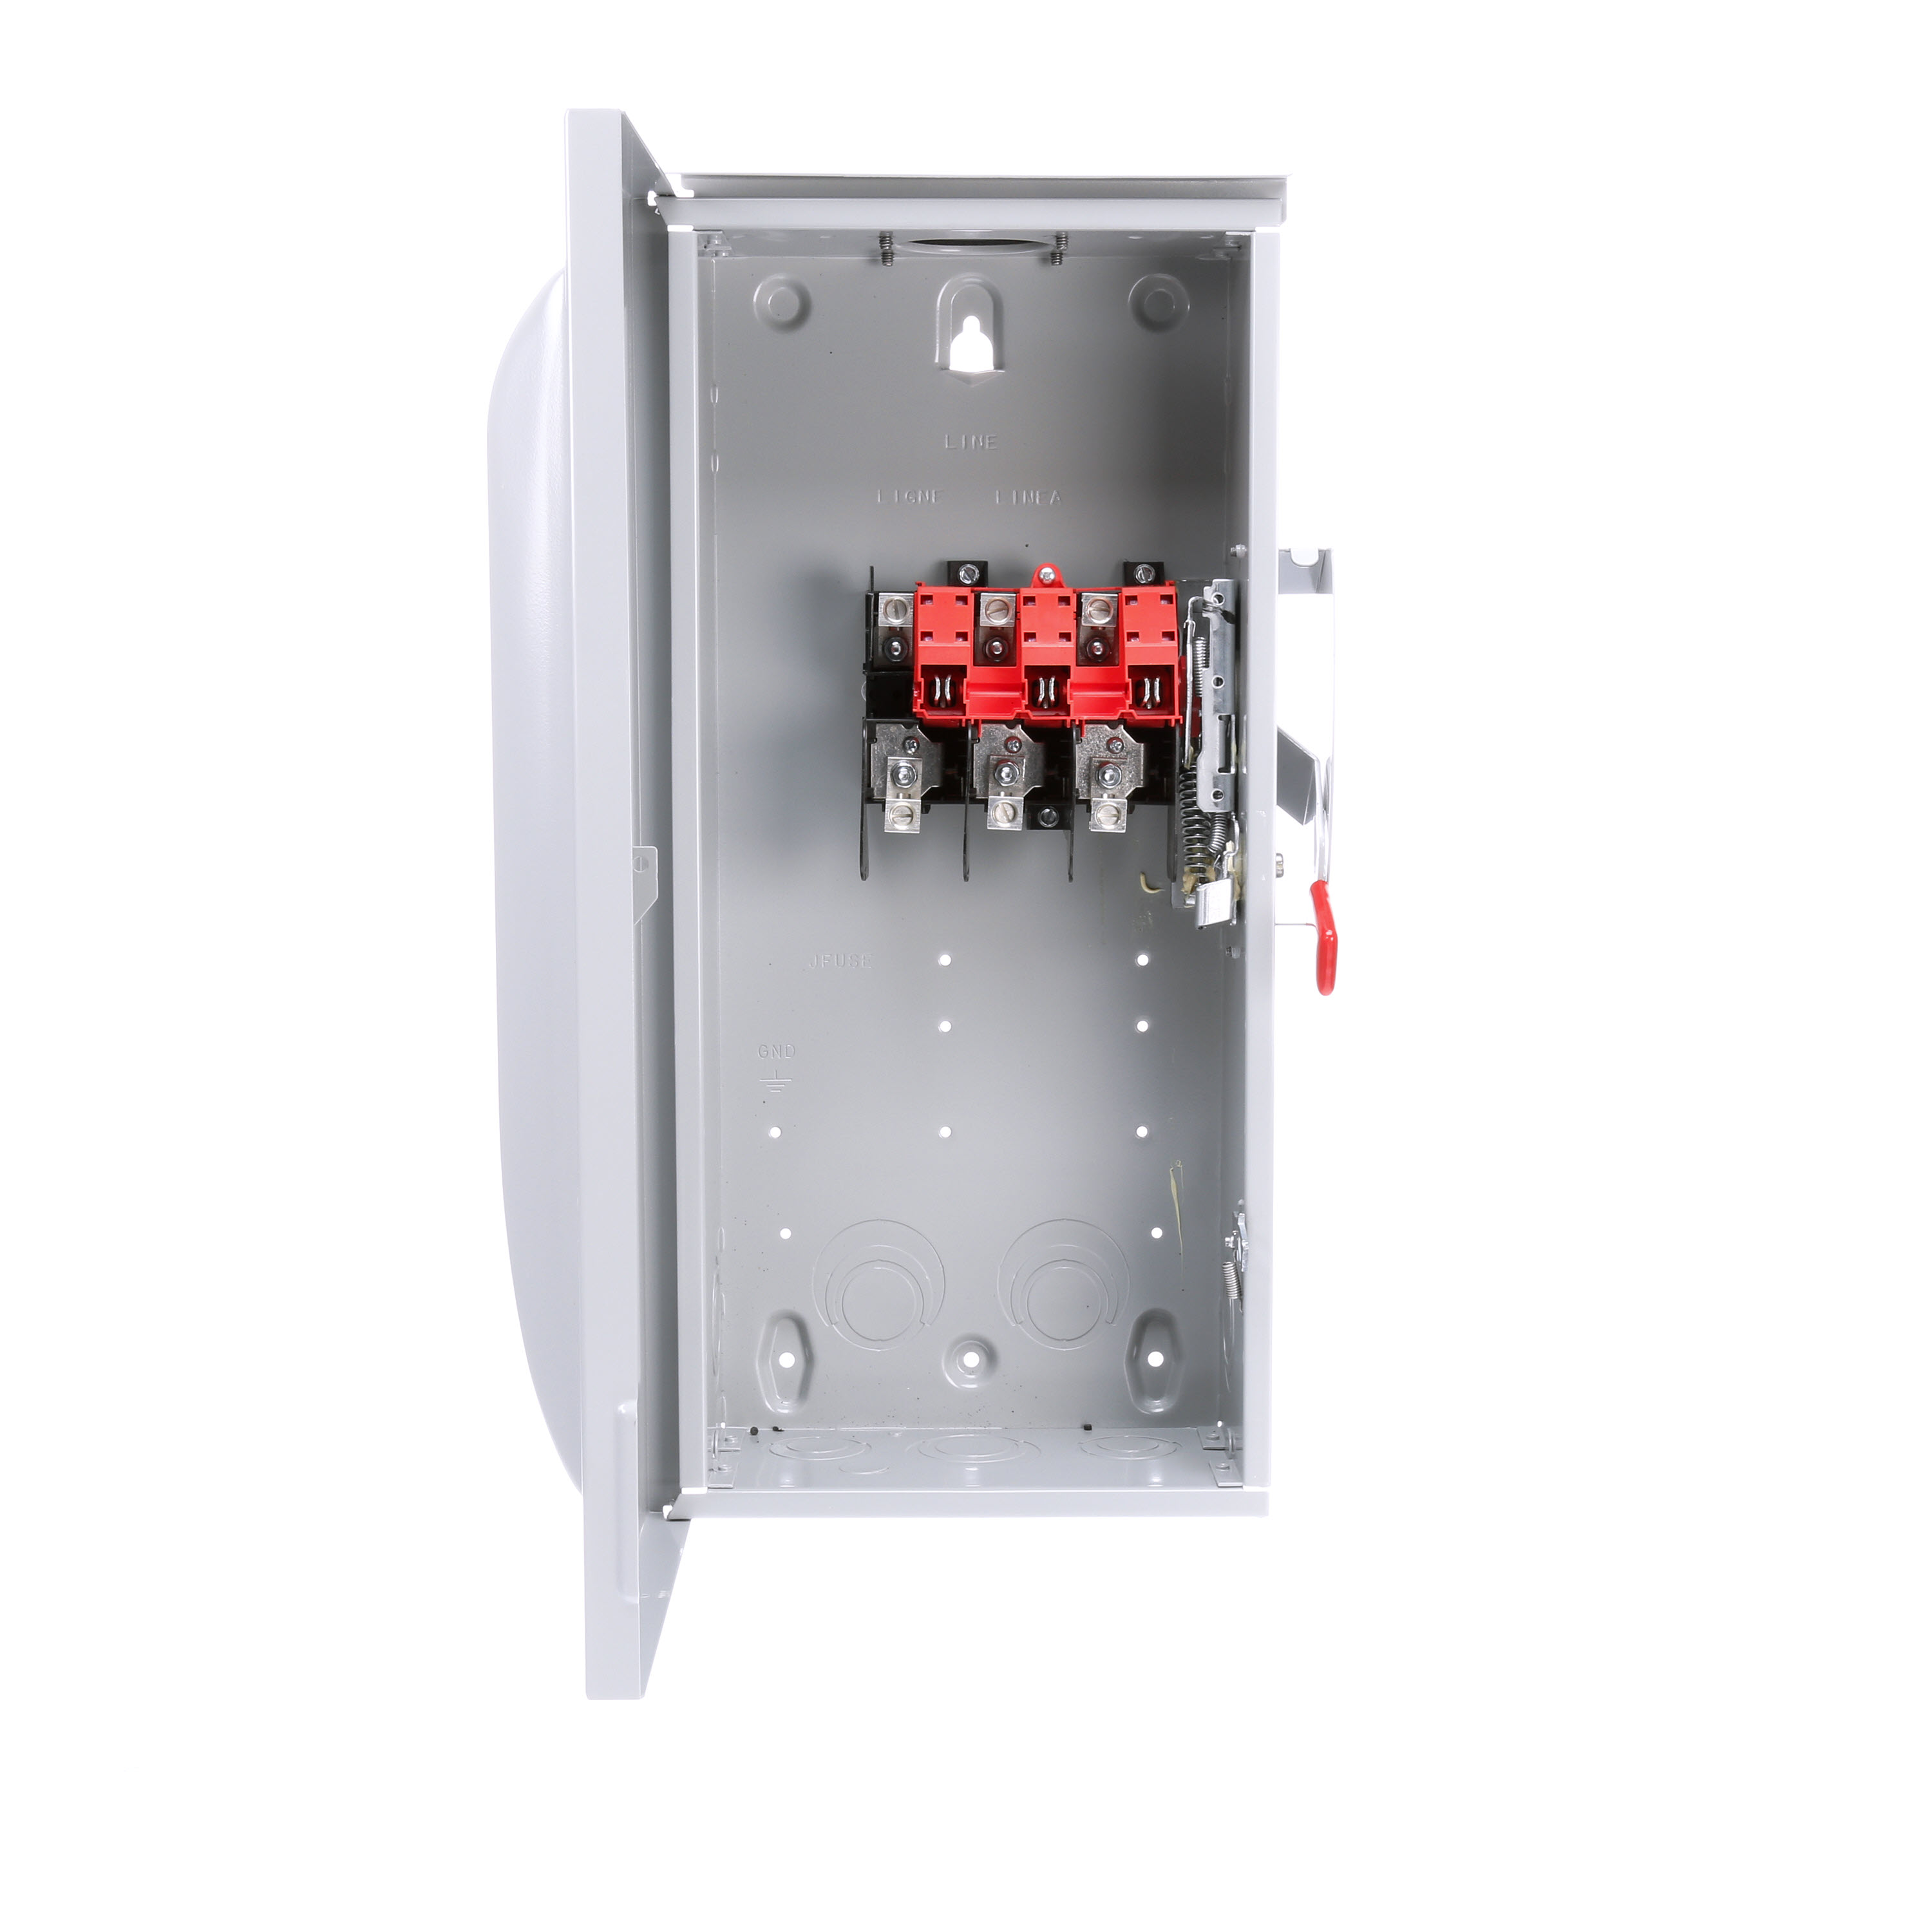 Siemens GNF323R Enclosed Low Voltage Non-Fused General Duty Safety Switch, 240 VAC, 100 A, 15 hp, 20 hp, TPST Contact, 3 Poles